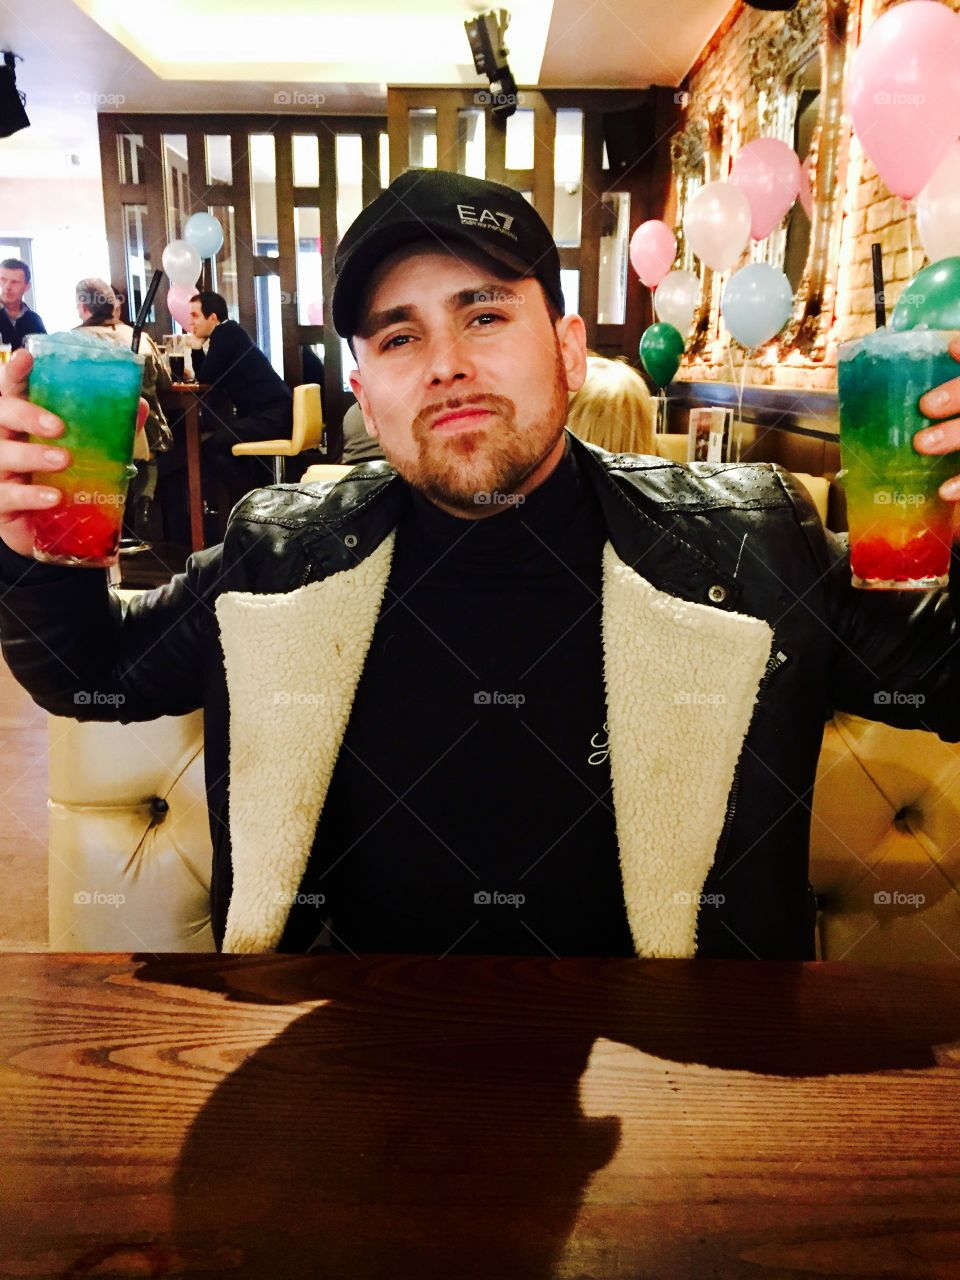 Gay pride photo of a male drinking two rainbow cocktails with pink and blue balloons